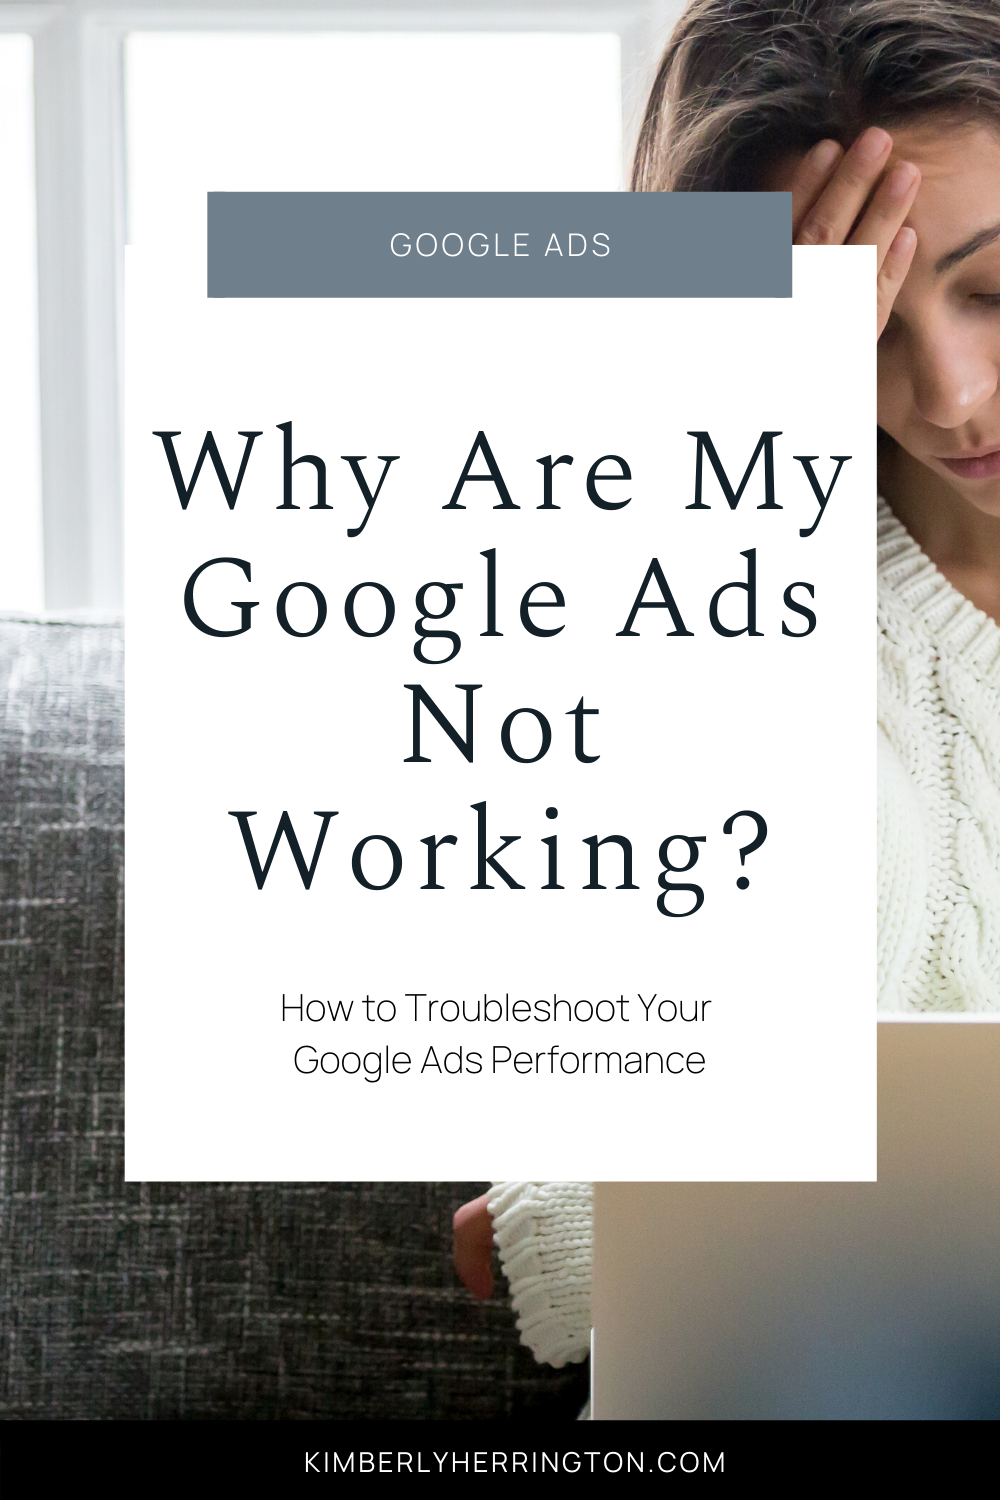 Why Are My Google Ads Not Working?